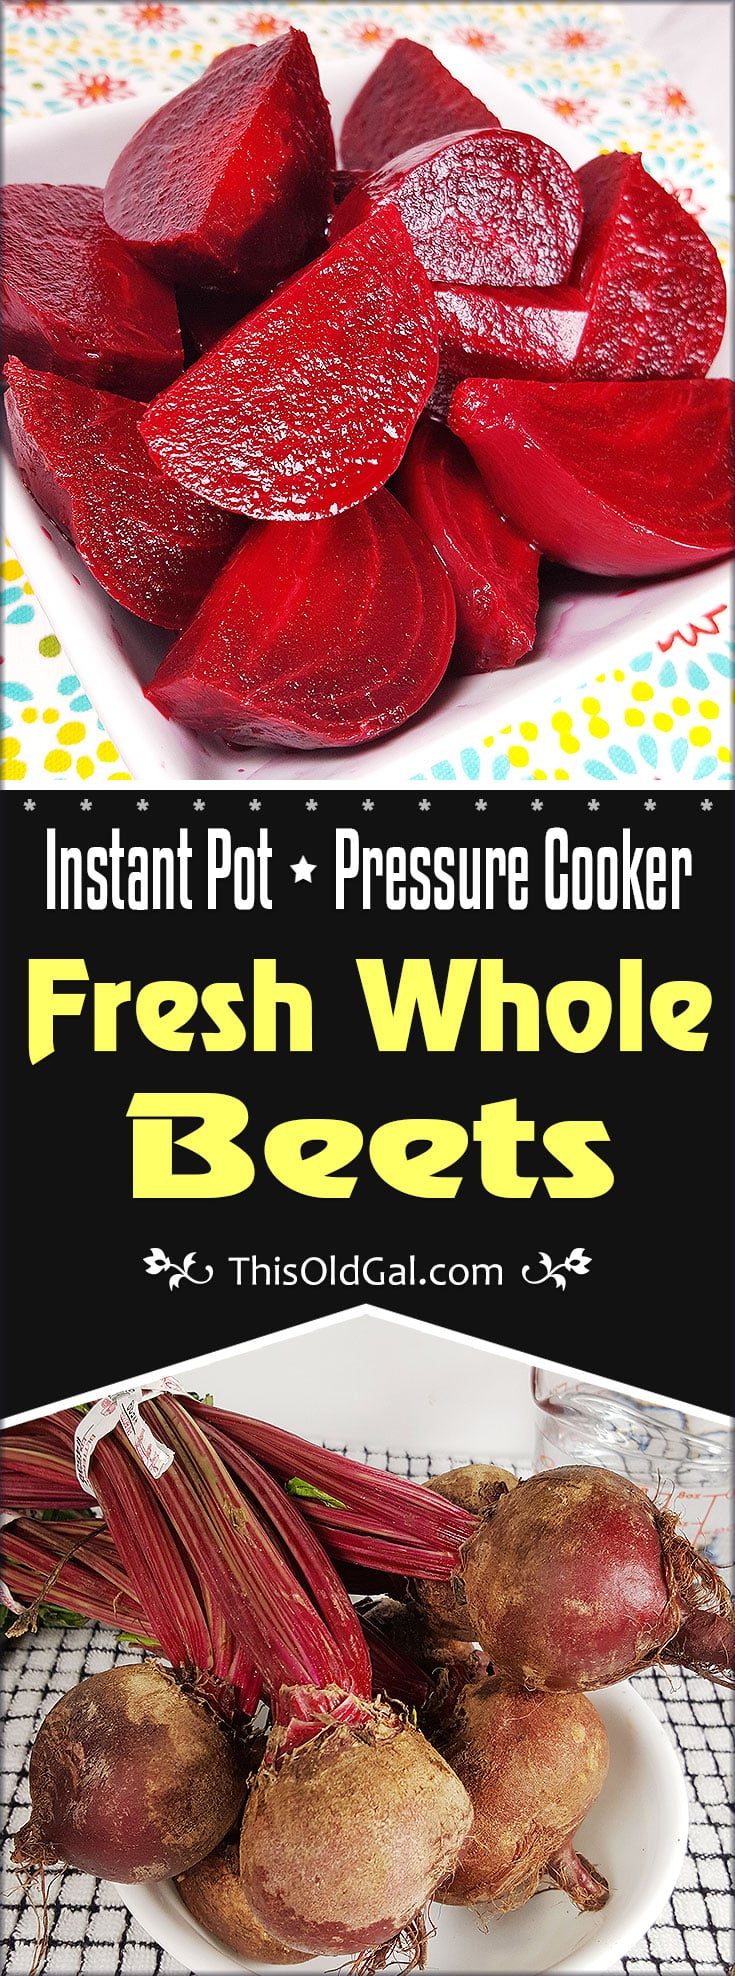 Pressure Cooker Instant Pot Fresh Whole Beets